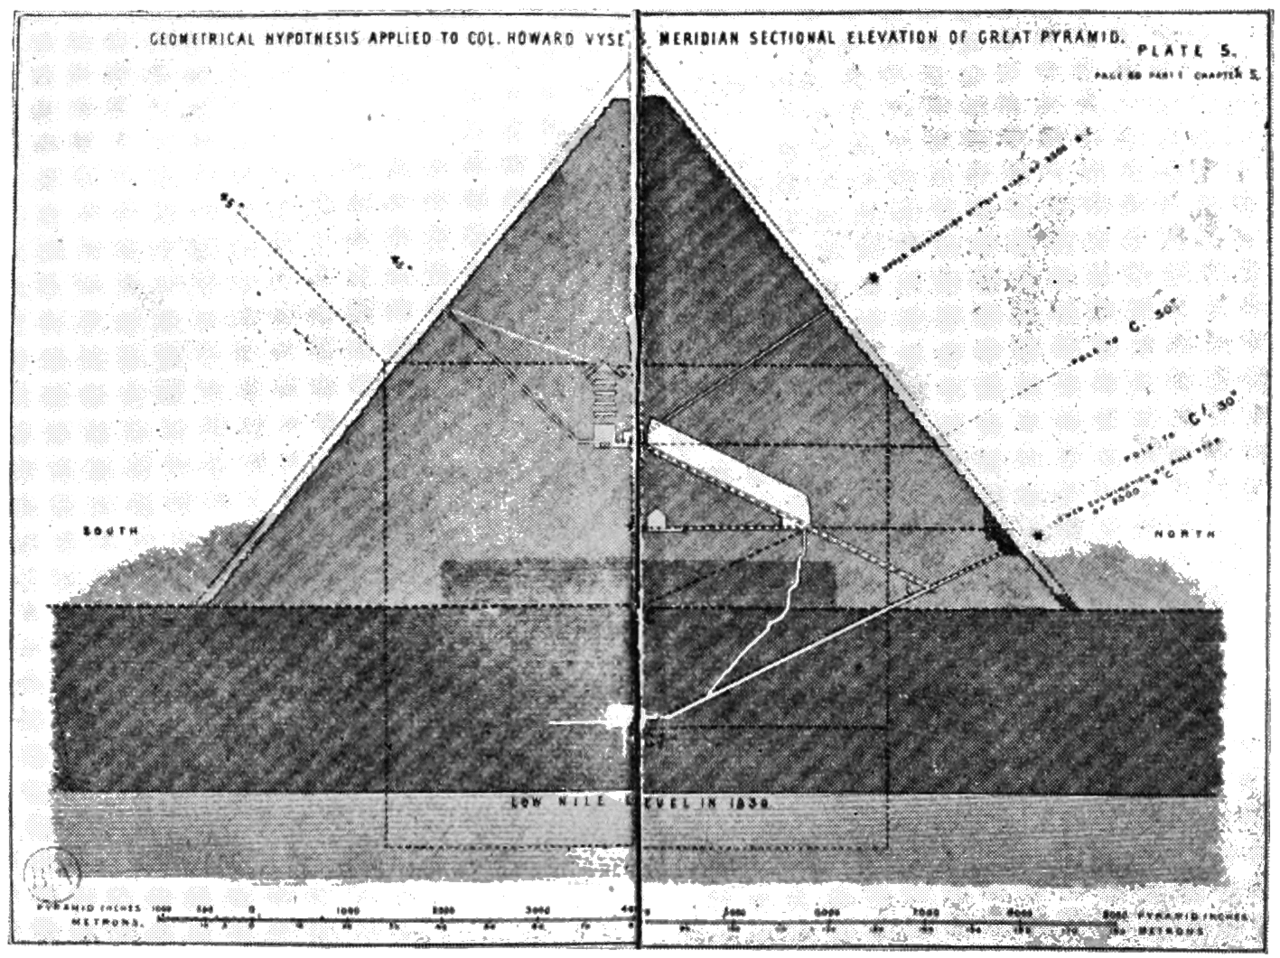 Filepsm v80 d460 geometric hypothesis of the sectional elevation of the great pyramid png